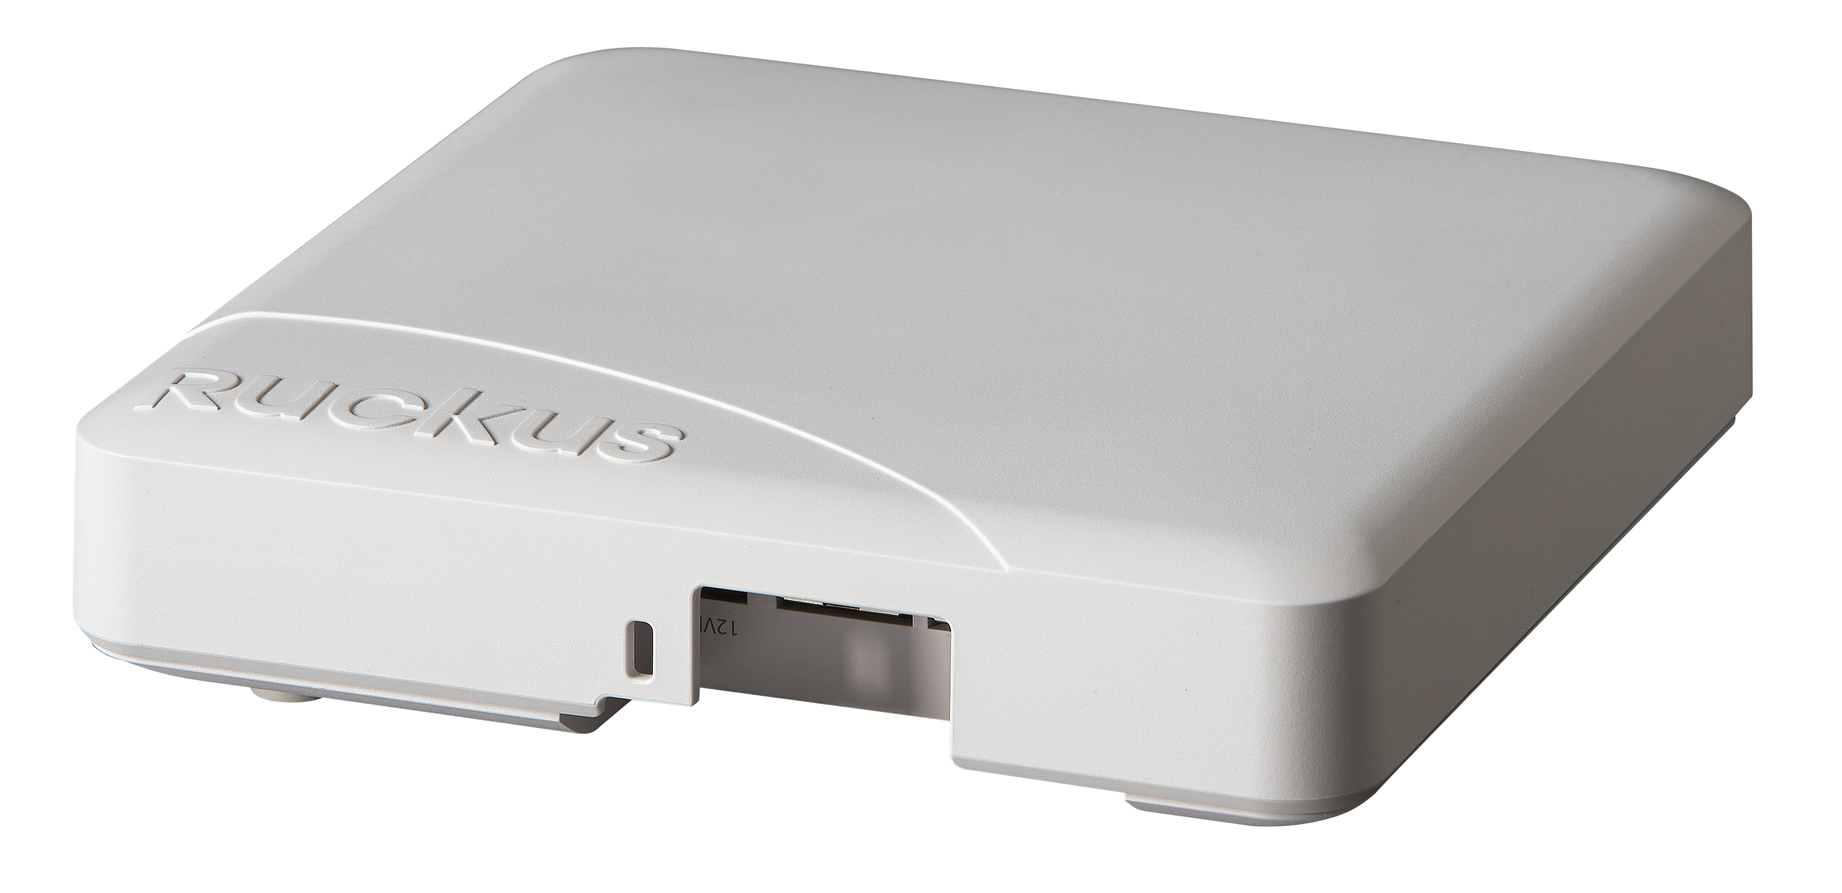 Ruckus R500 | Products | Ruckus Wireless Support